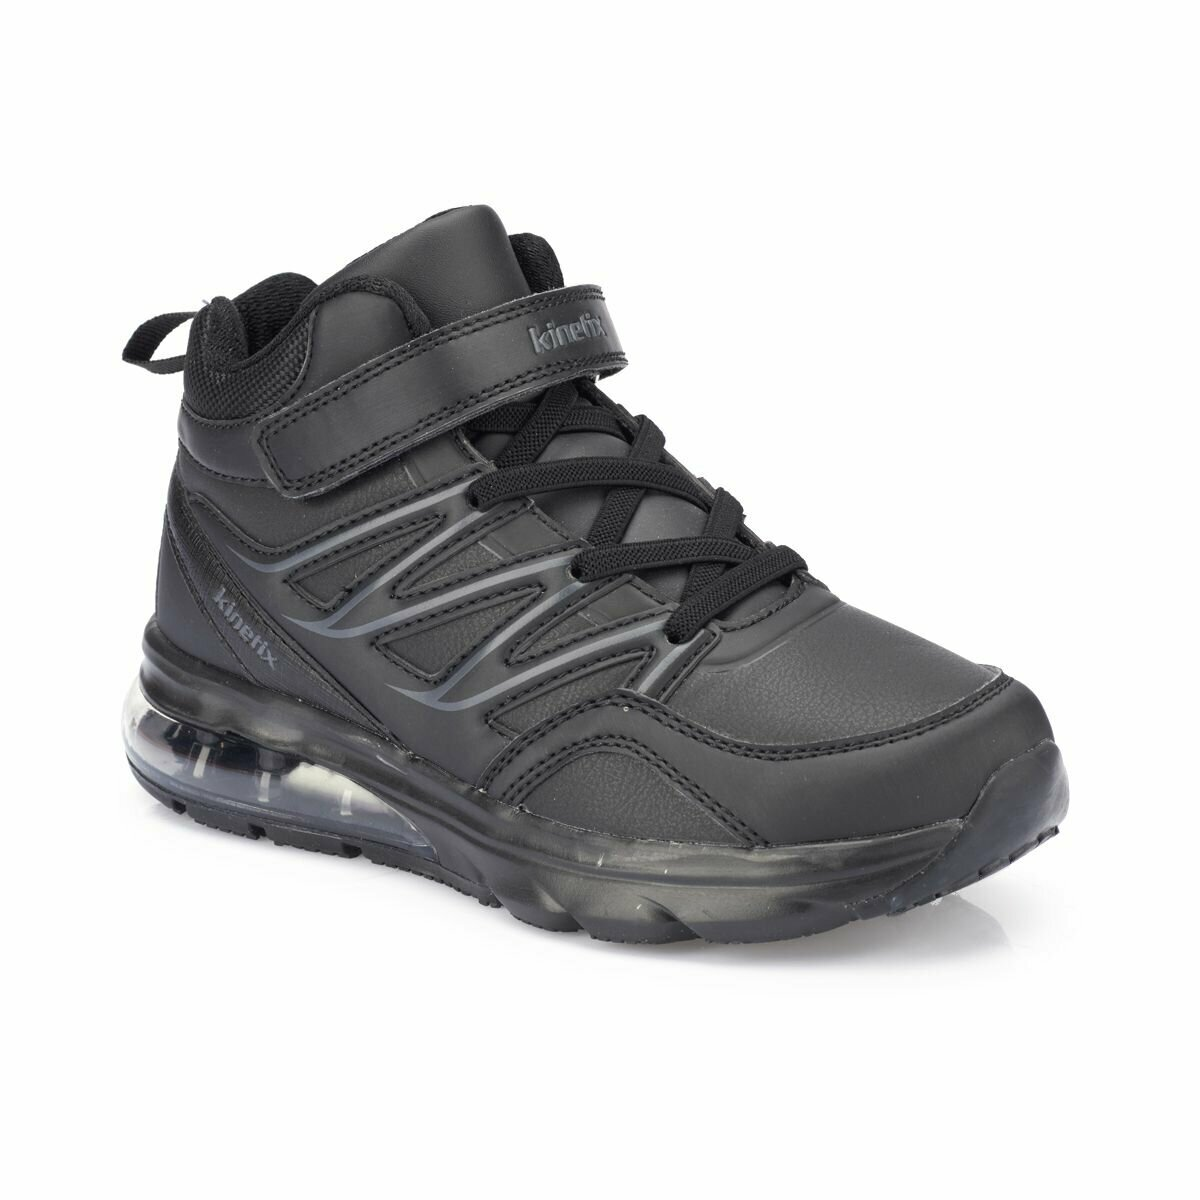 FLO OZONE PU HI J Black Male Child Running Shoes KINETIX